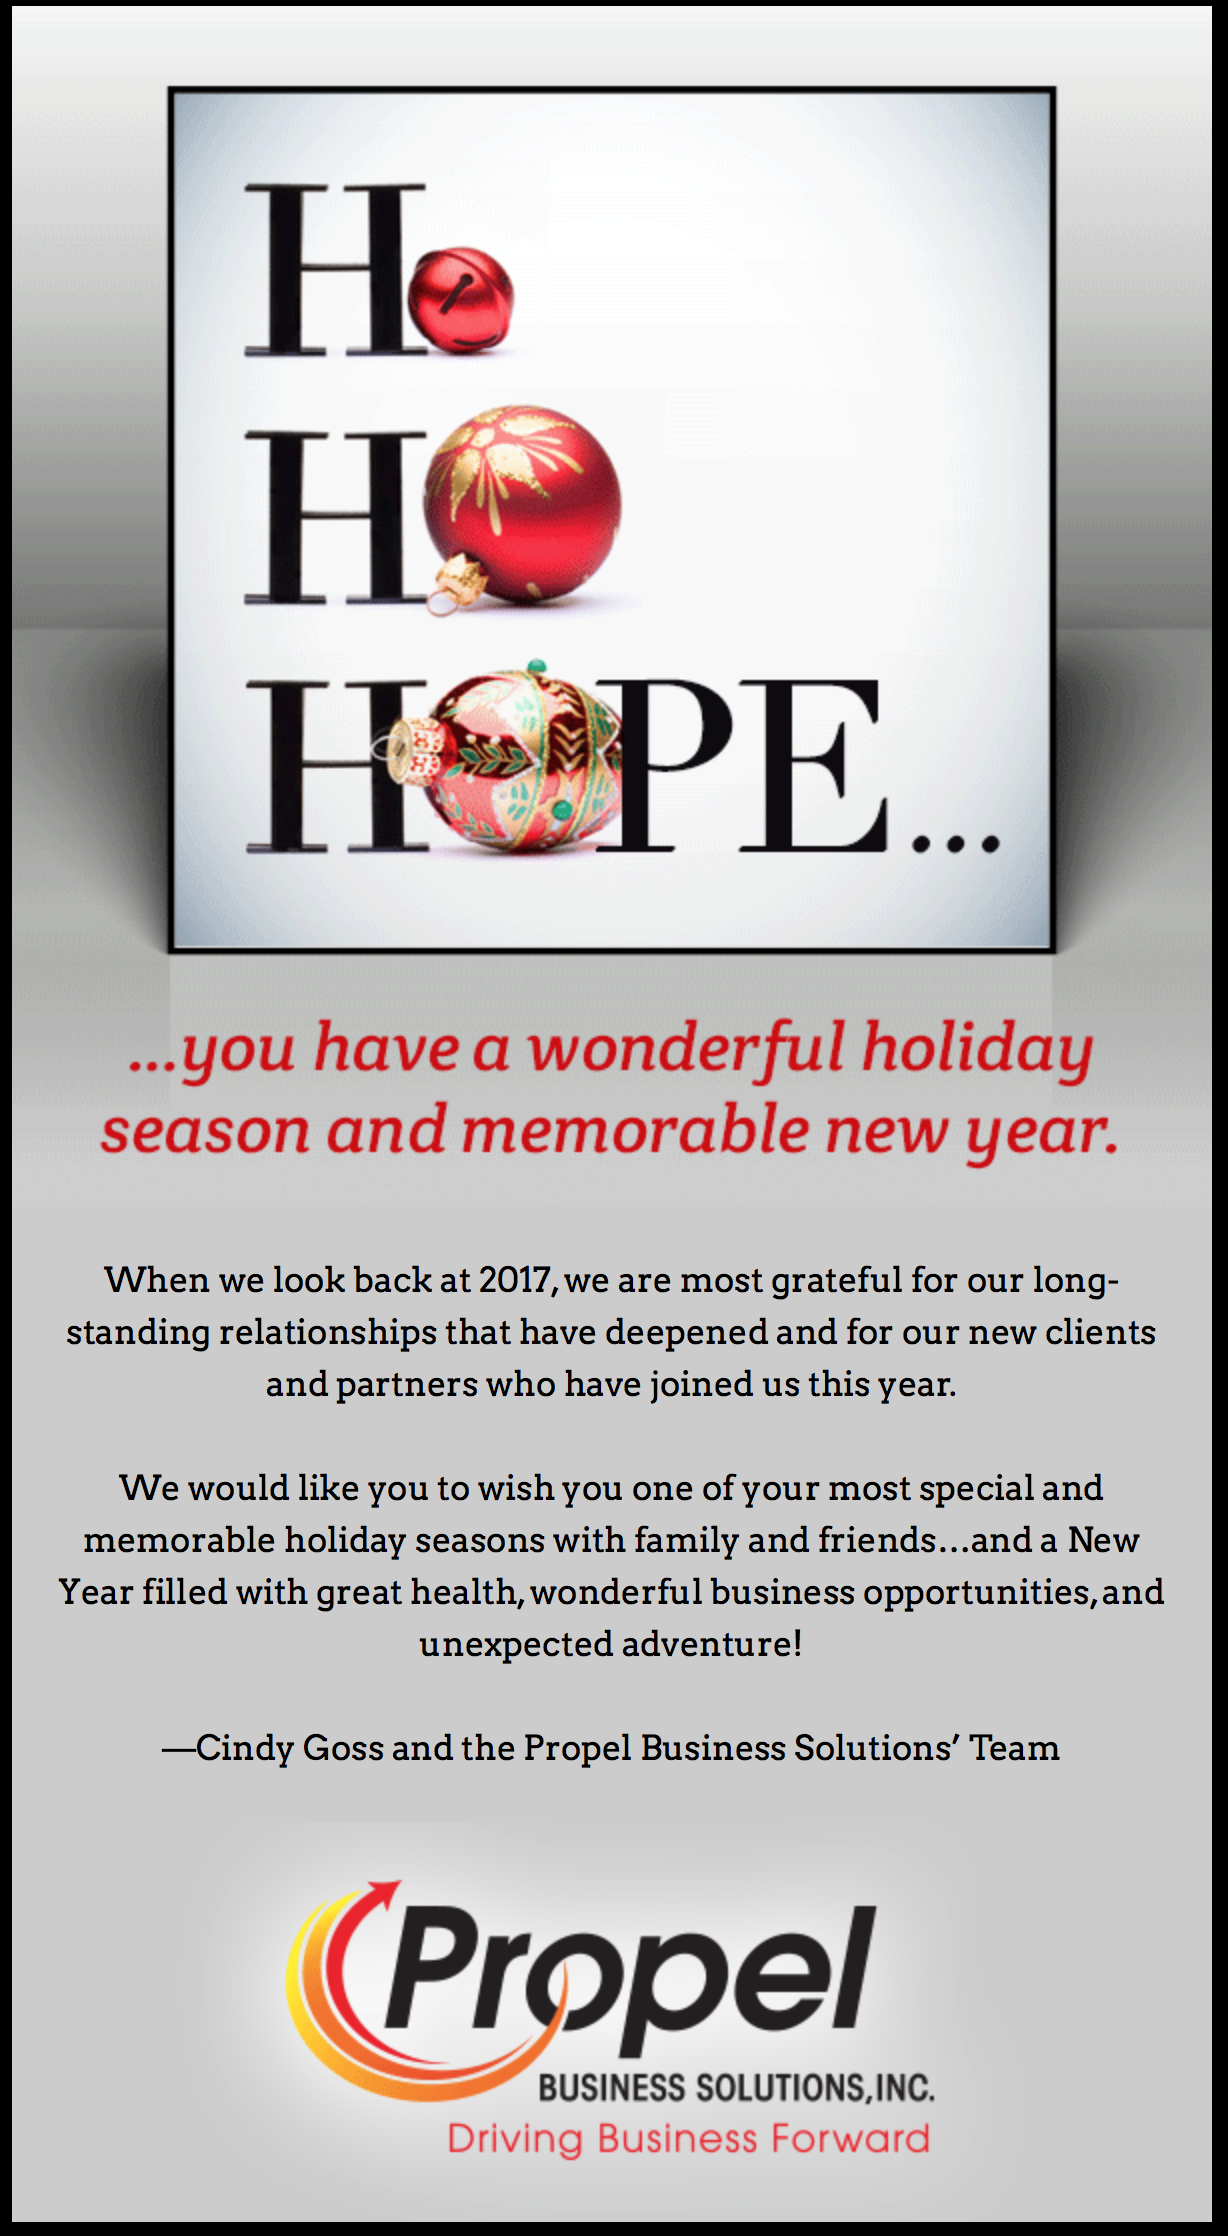 Happy Holidays from Propel Business Solutions